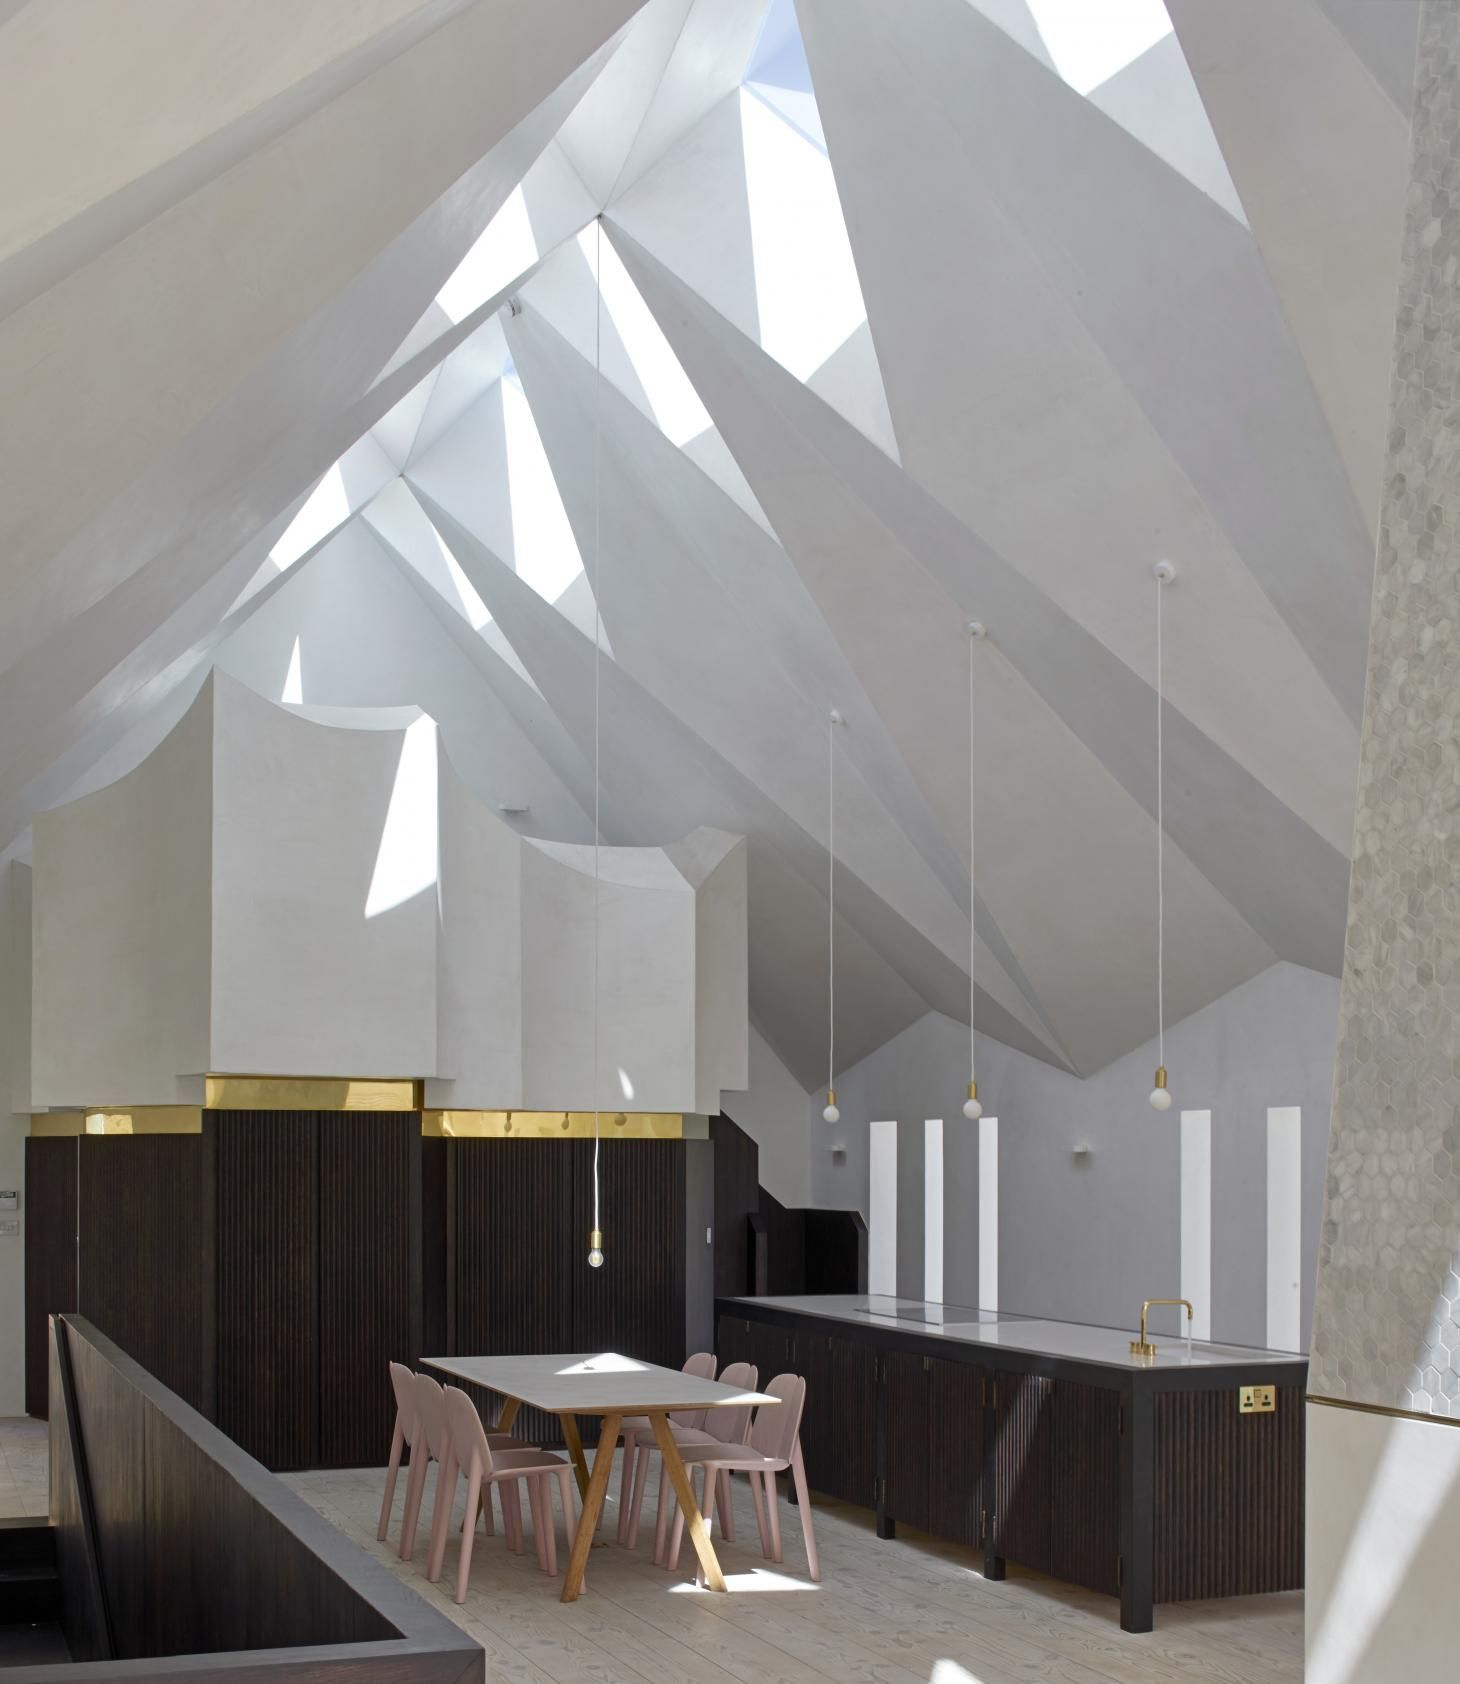 Craftworks Transforms Old Chapel Into Modern Home In London Architectural Assistant Architects London House